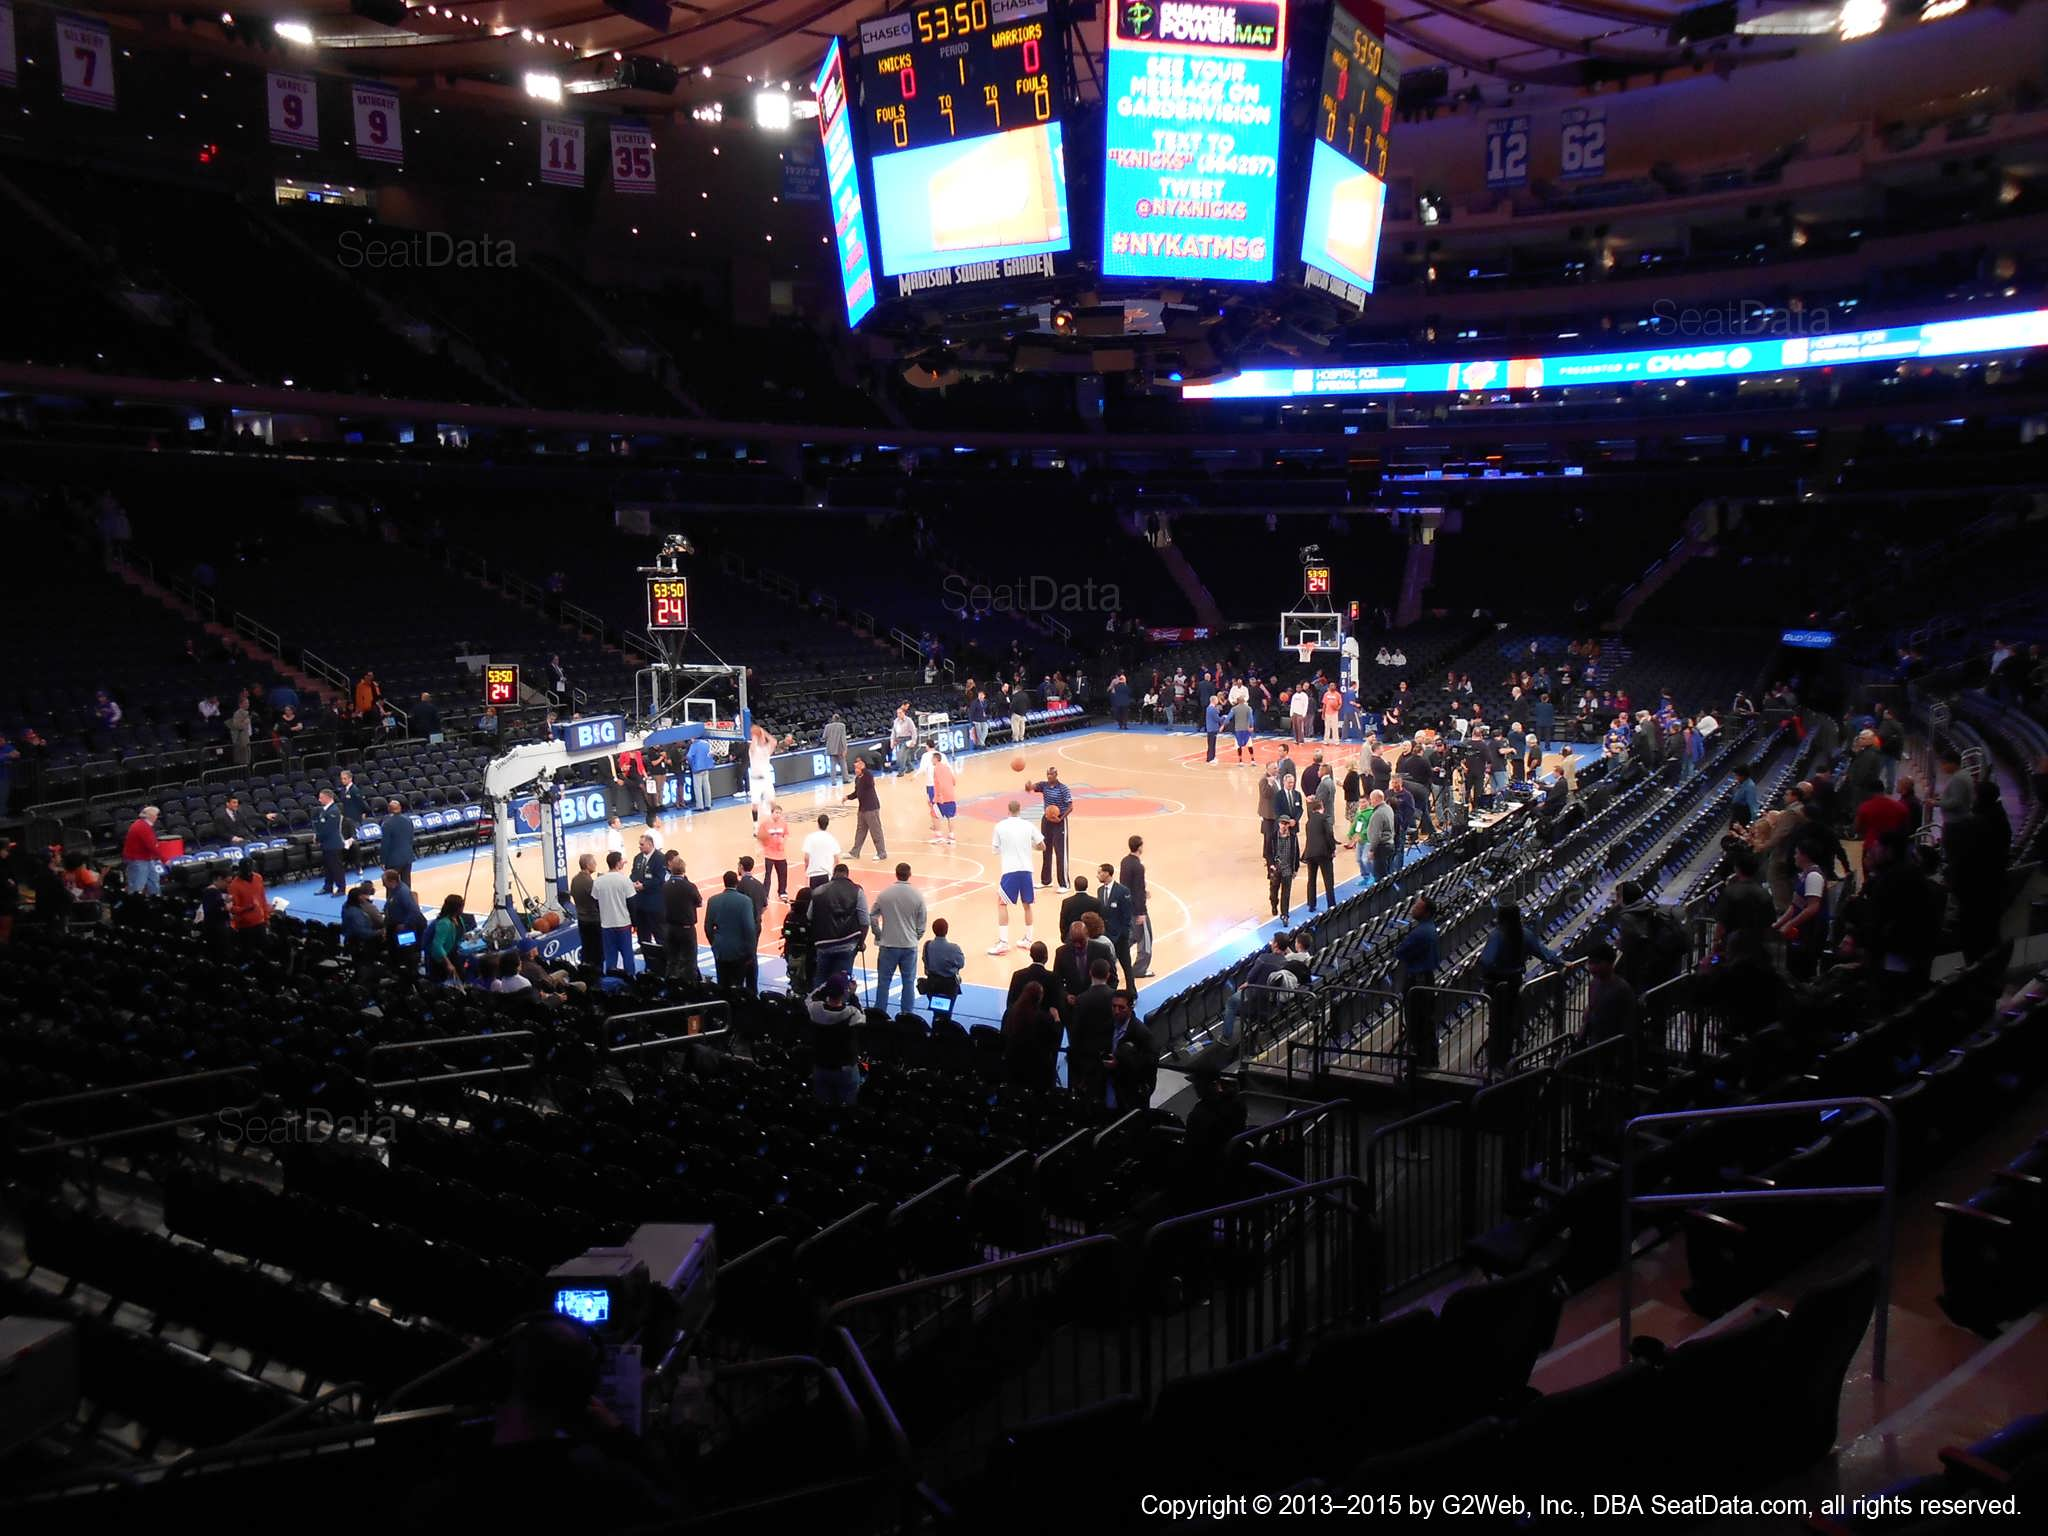 Seat view from section 114 at Madison Square Garden, home of the New York Knicks.